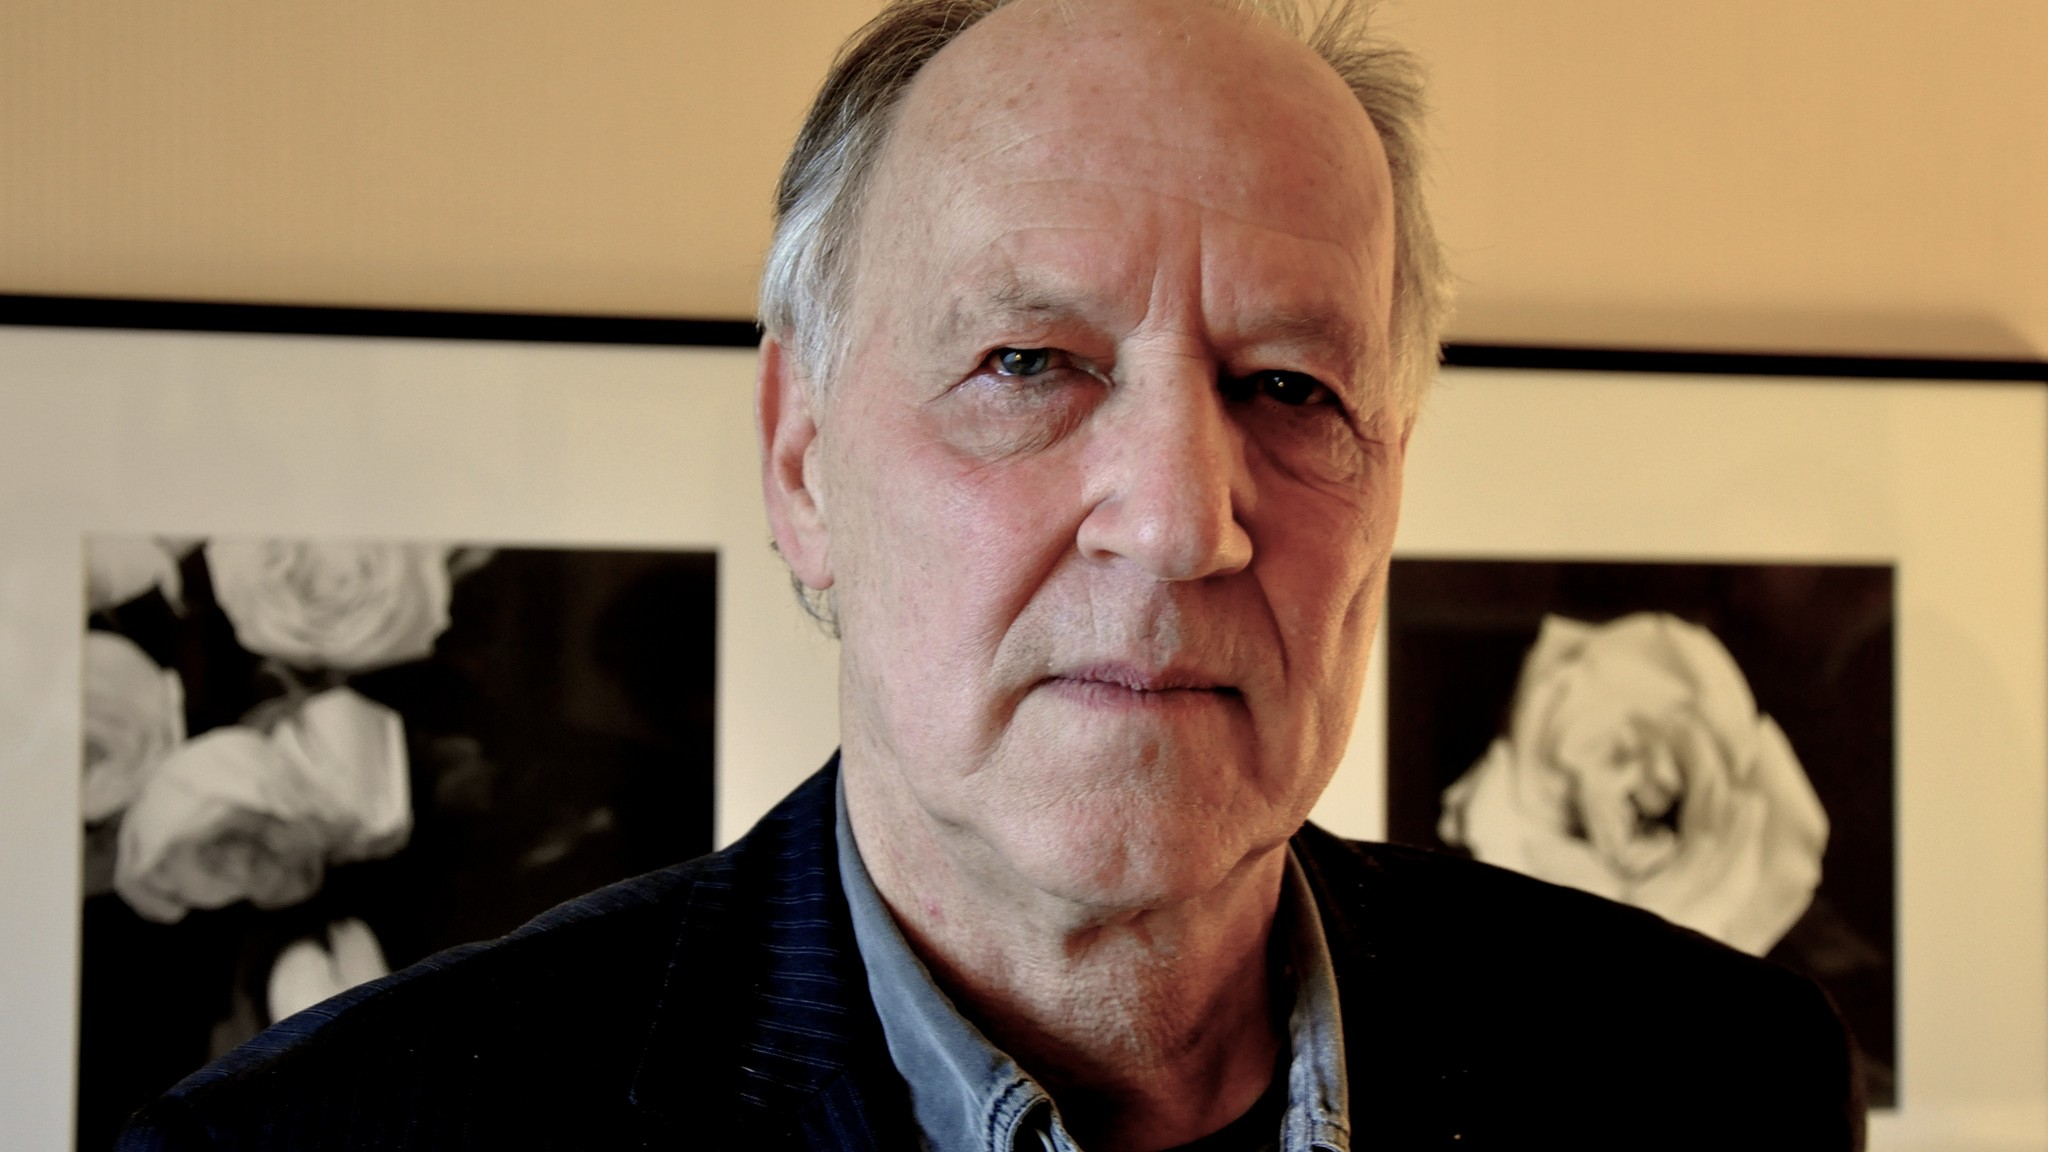 The Hell Of Not Being Able to Leave the Internet, As Captured By Werner Herzog